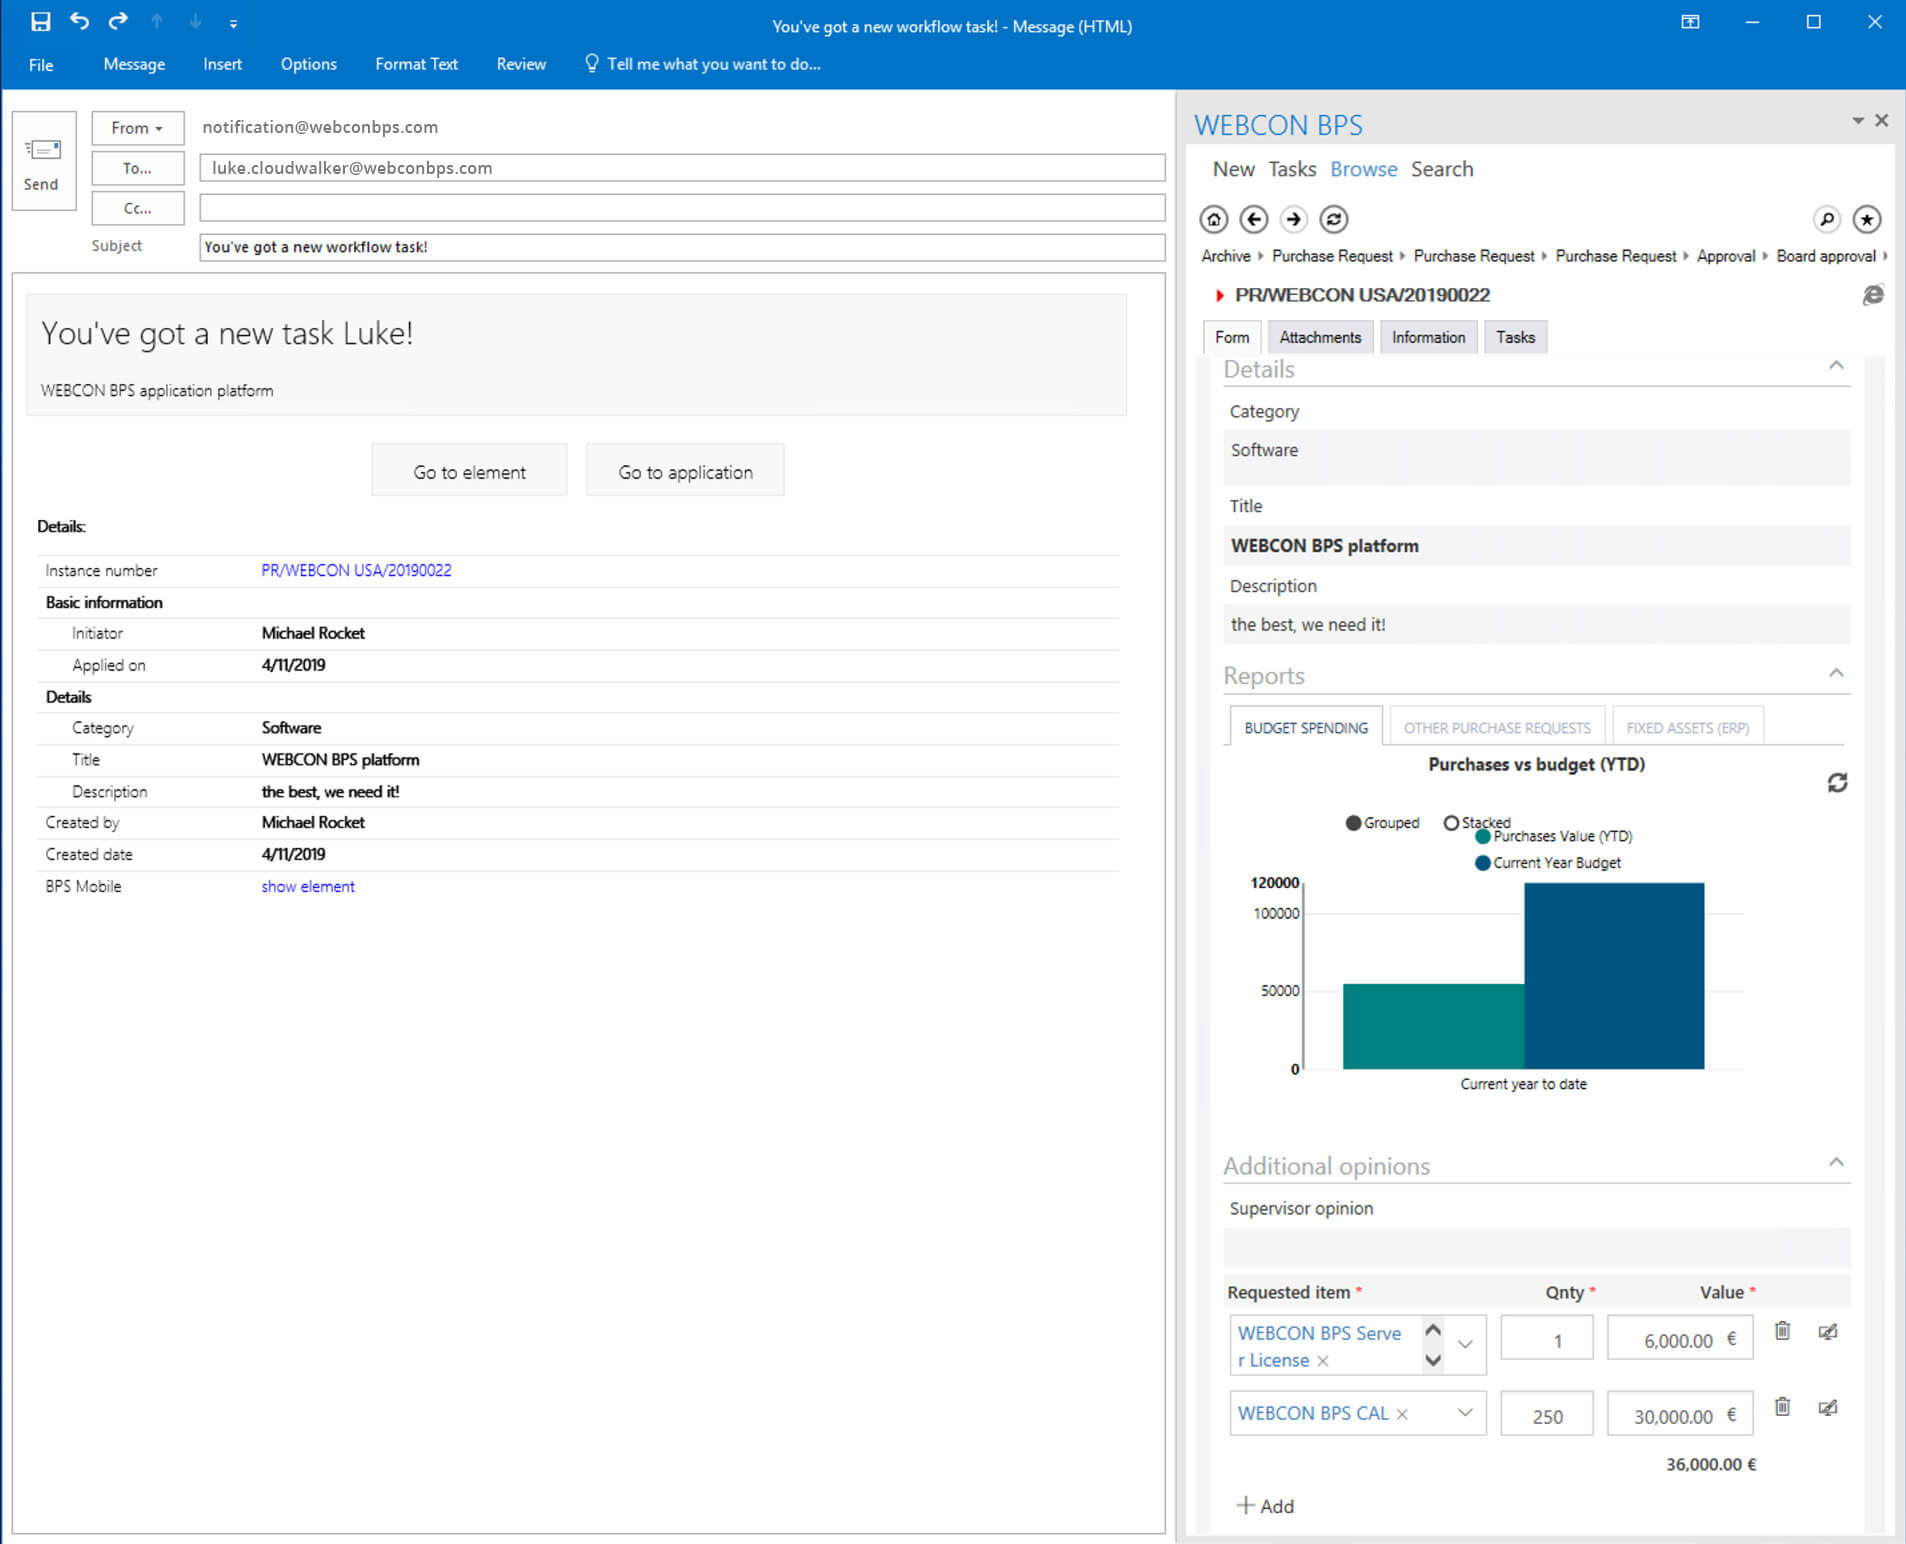 Outlook dashboard in WEBCON BPS